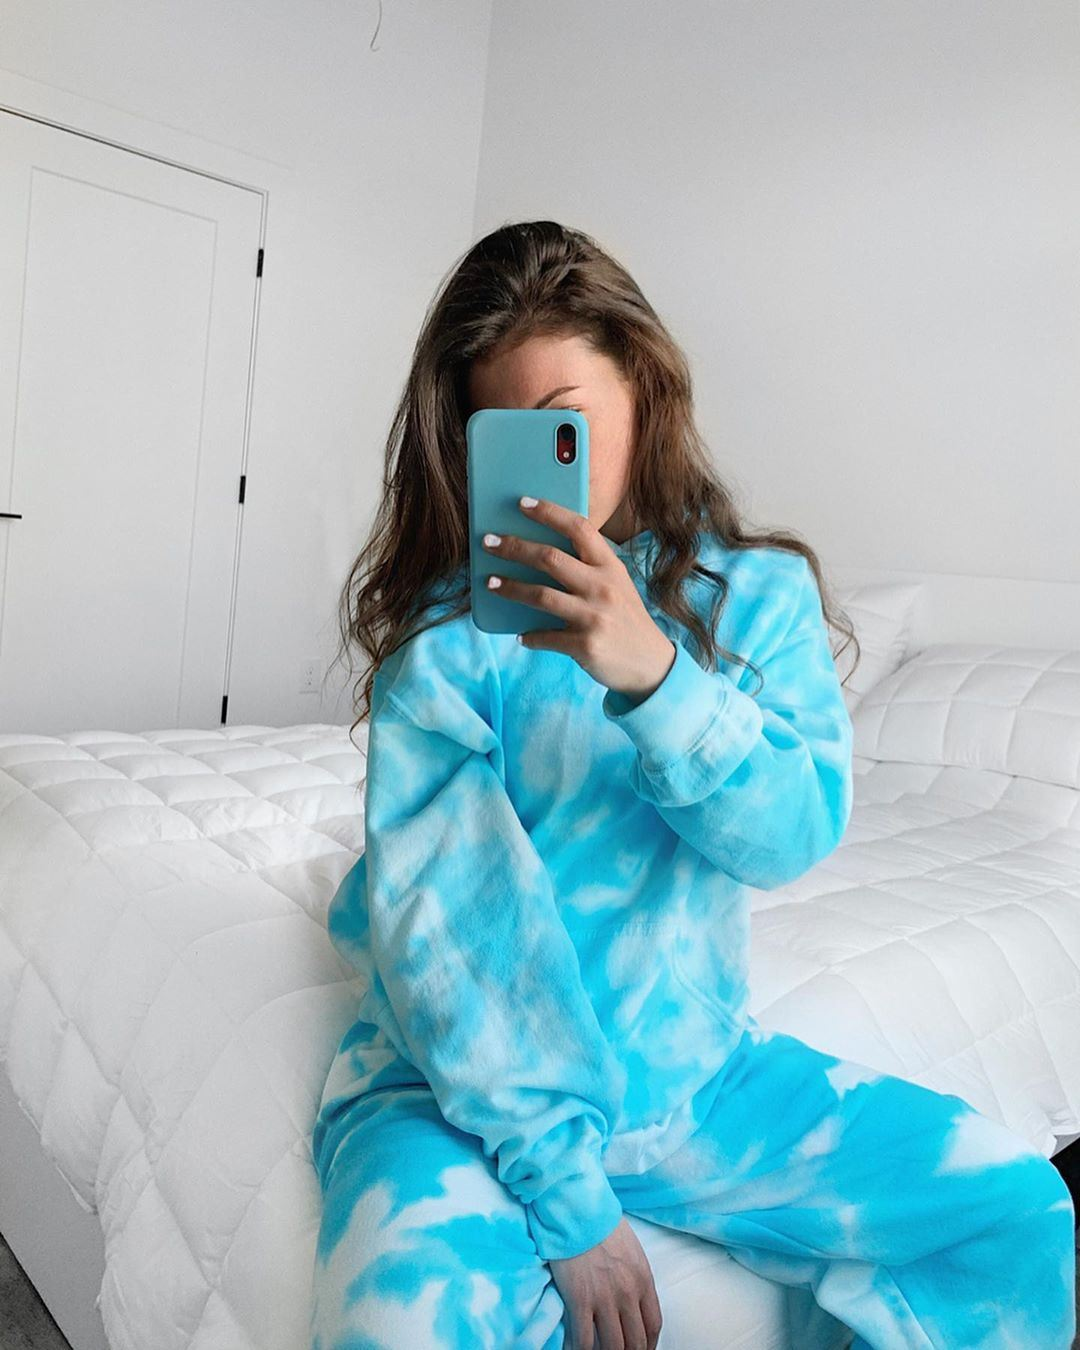 Turquoise crumple tie-dye suit from @haleyly0ns